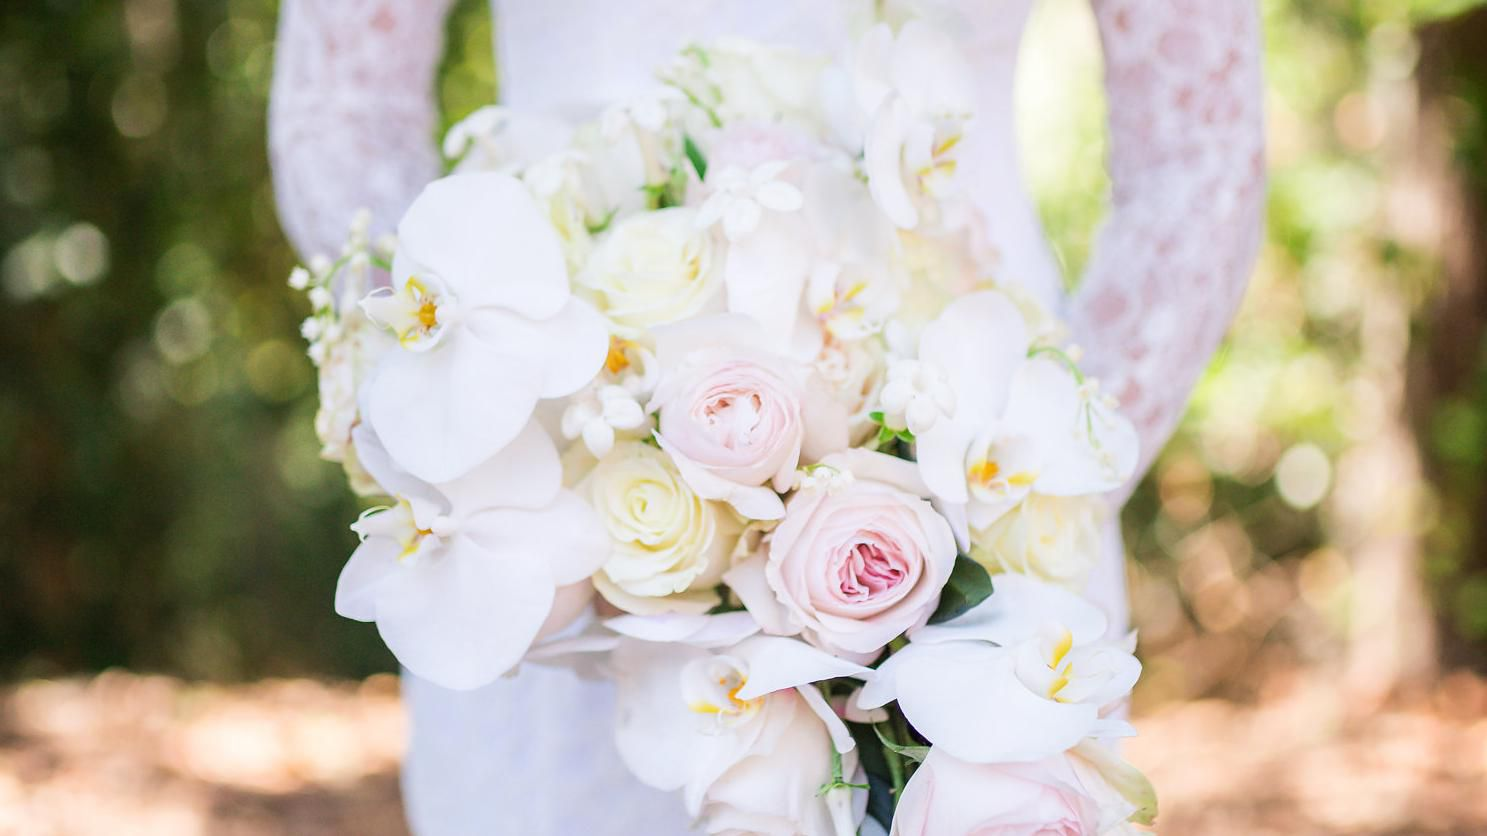 Your Most Pressing Wedding Flower Questions Answered